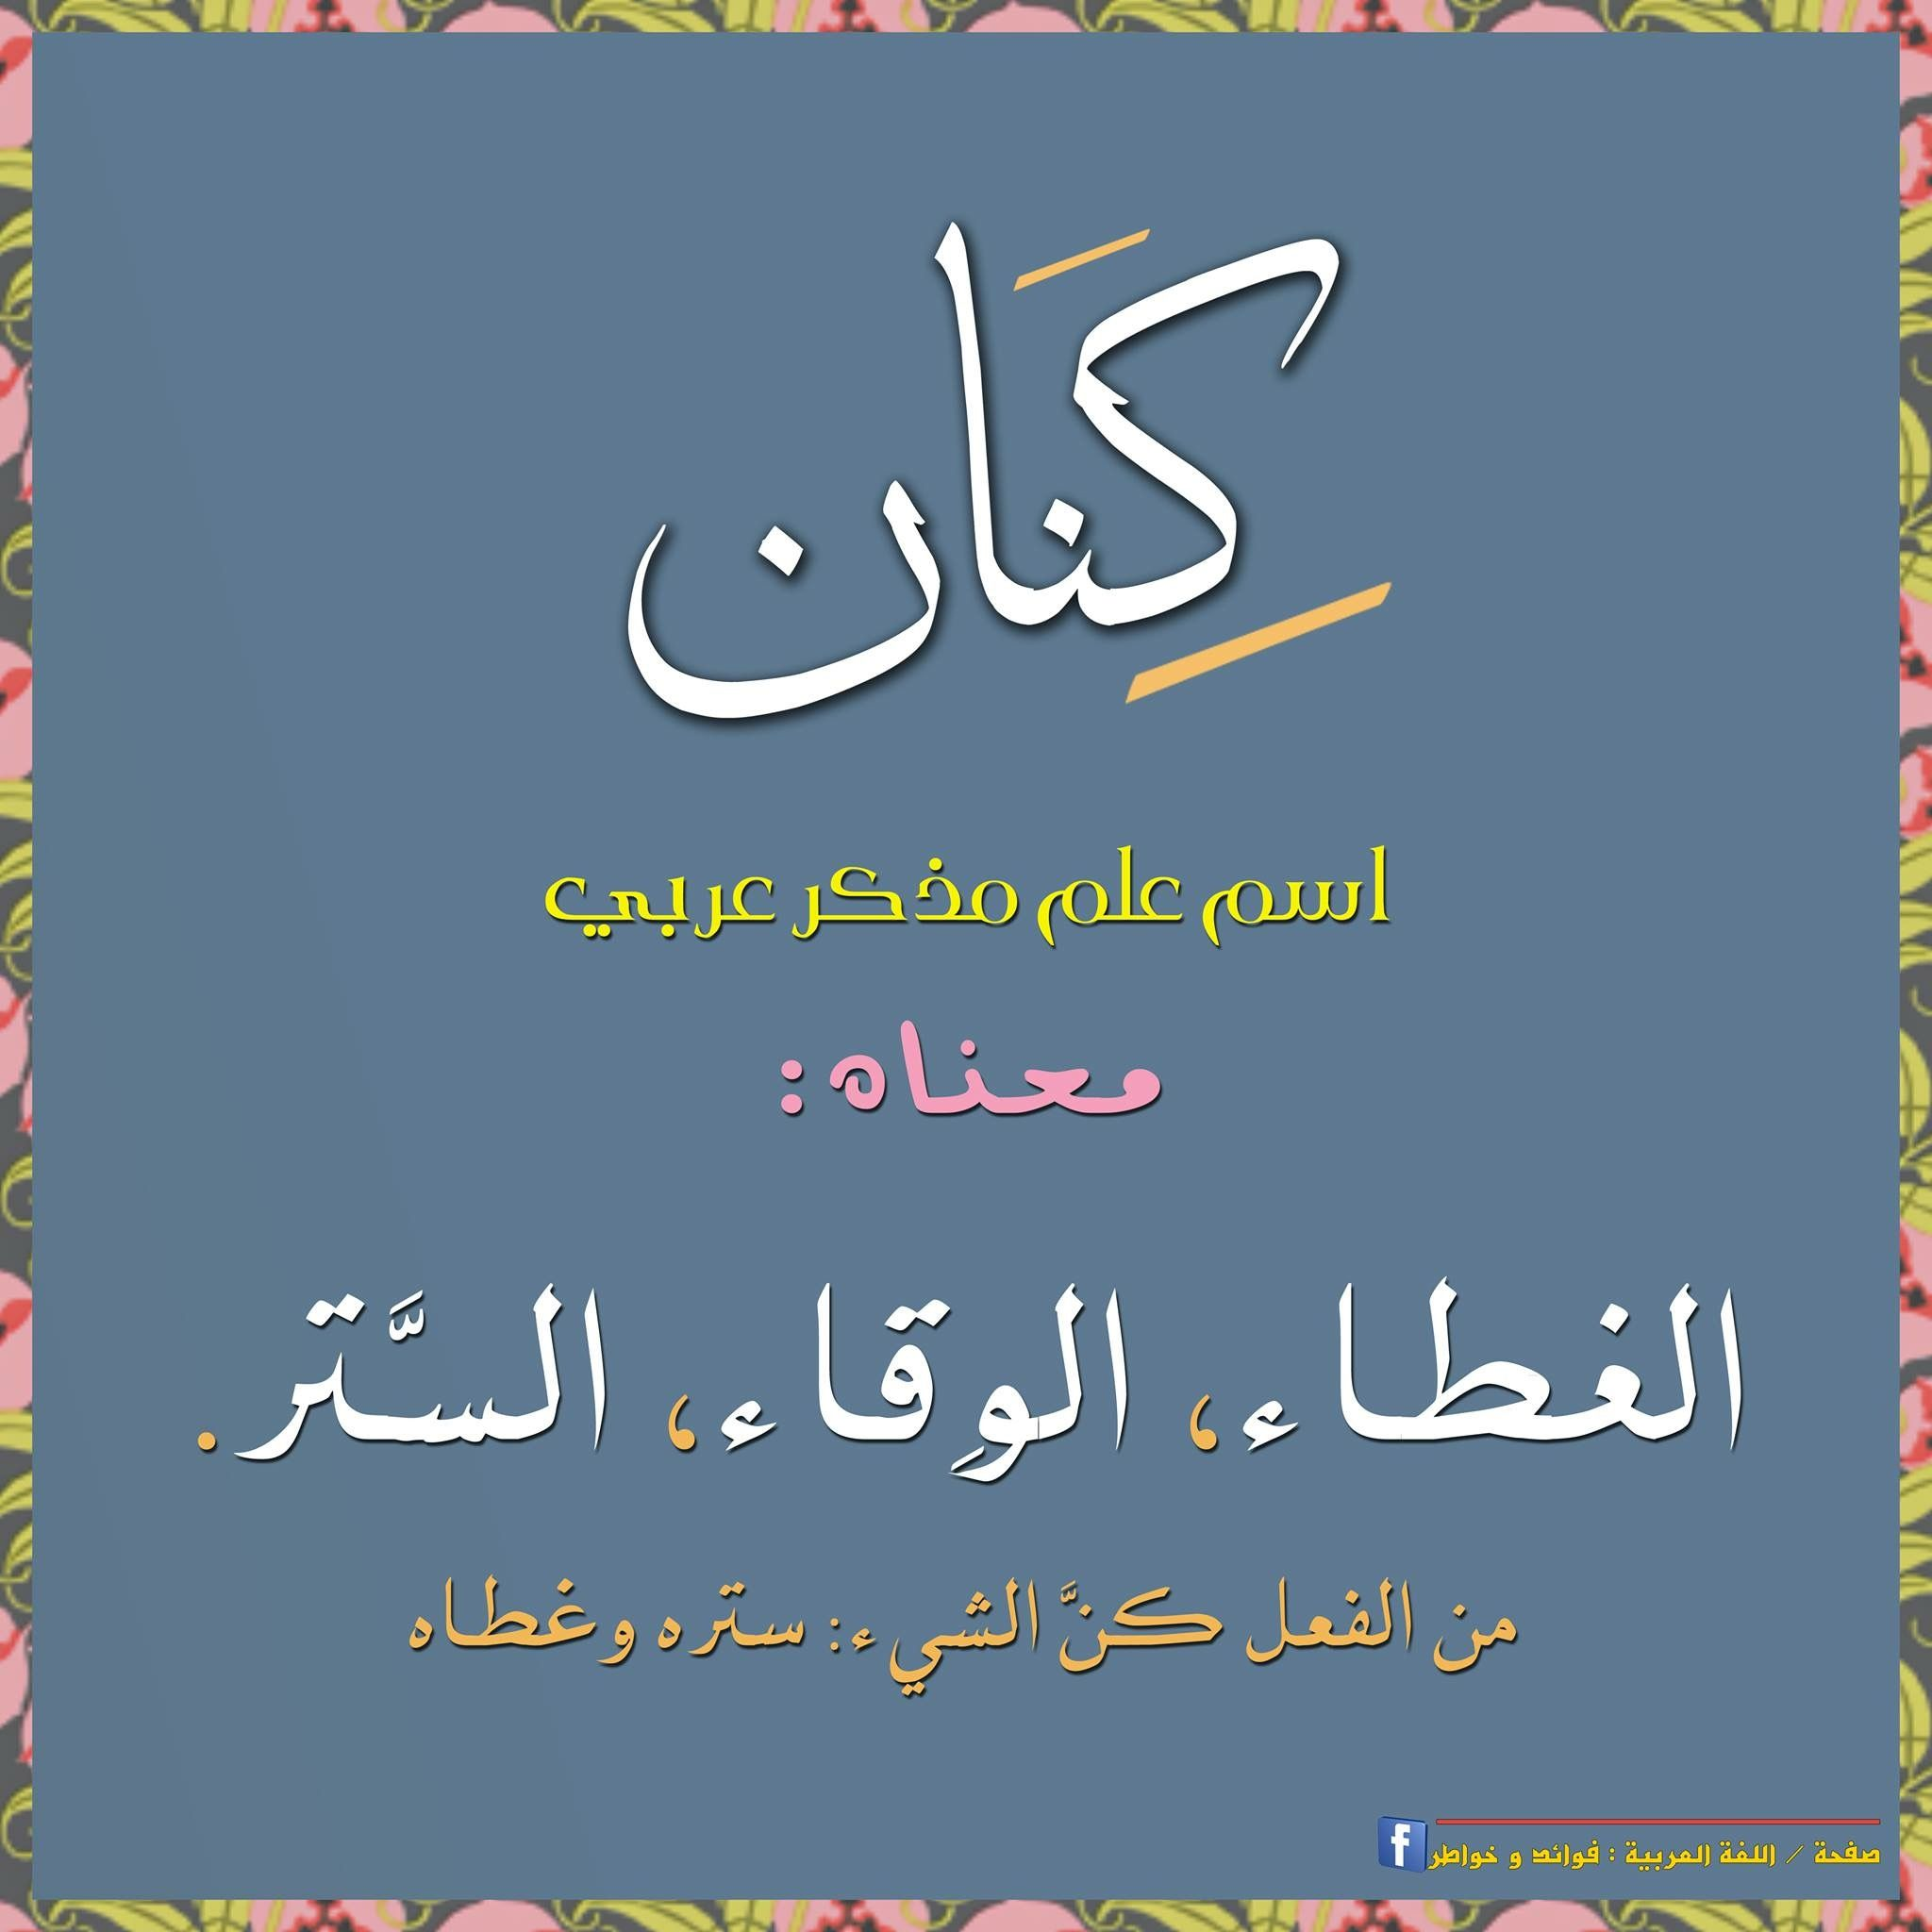 Pin By Mounir On منوعة عربية Words Quotes Learn Arabic Language Words